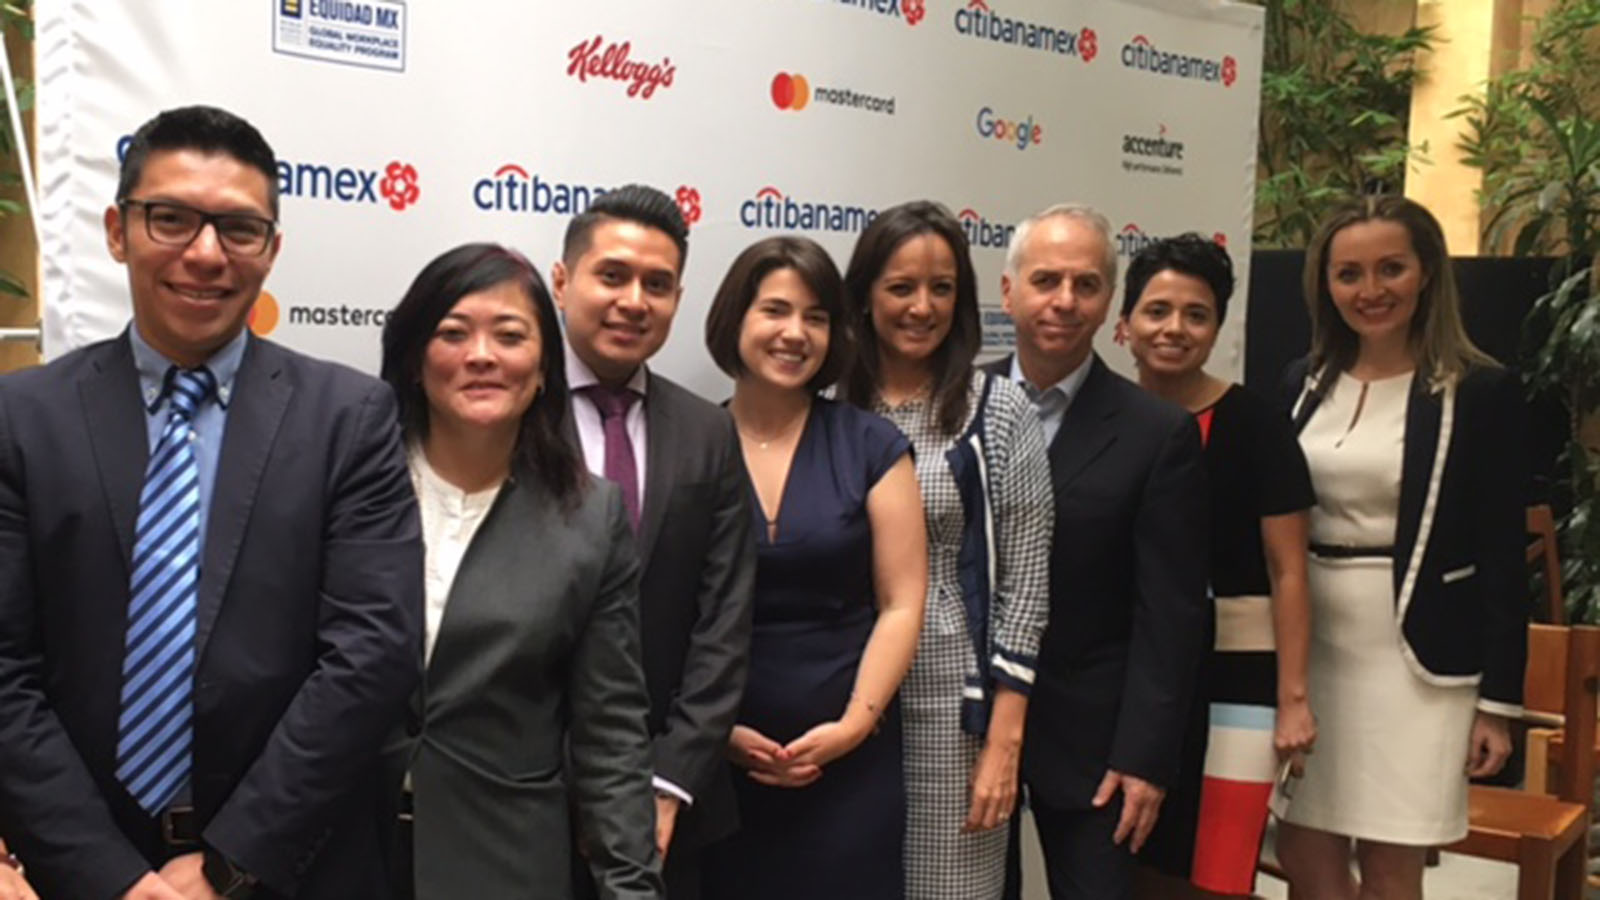 HRC Equidad MX Launches Groundbreaking LGBTQ Workplace Inclusion Survey